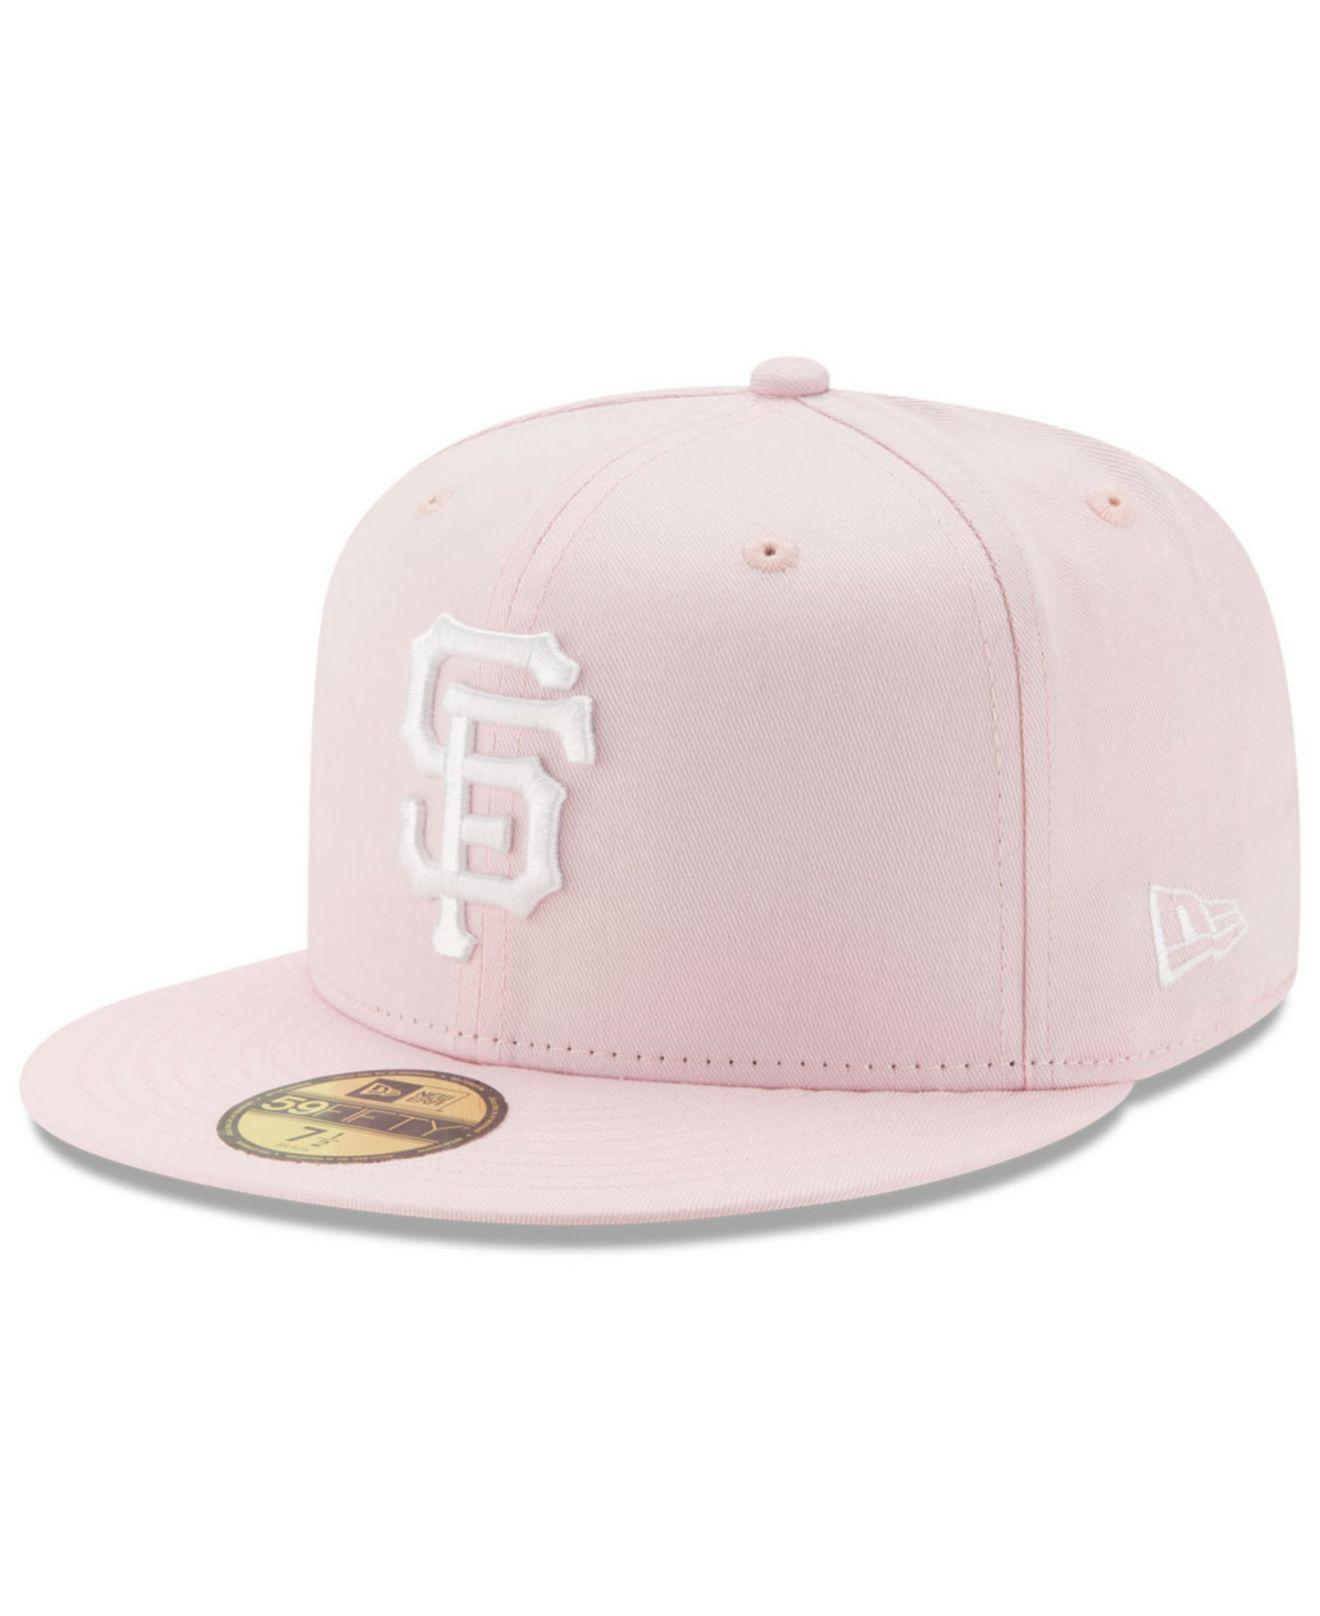 brand new 2ef25 16387 KTZ San Francisco Giants C-dub Patch 59fifty Cap in Pink - Lyst